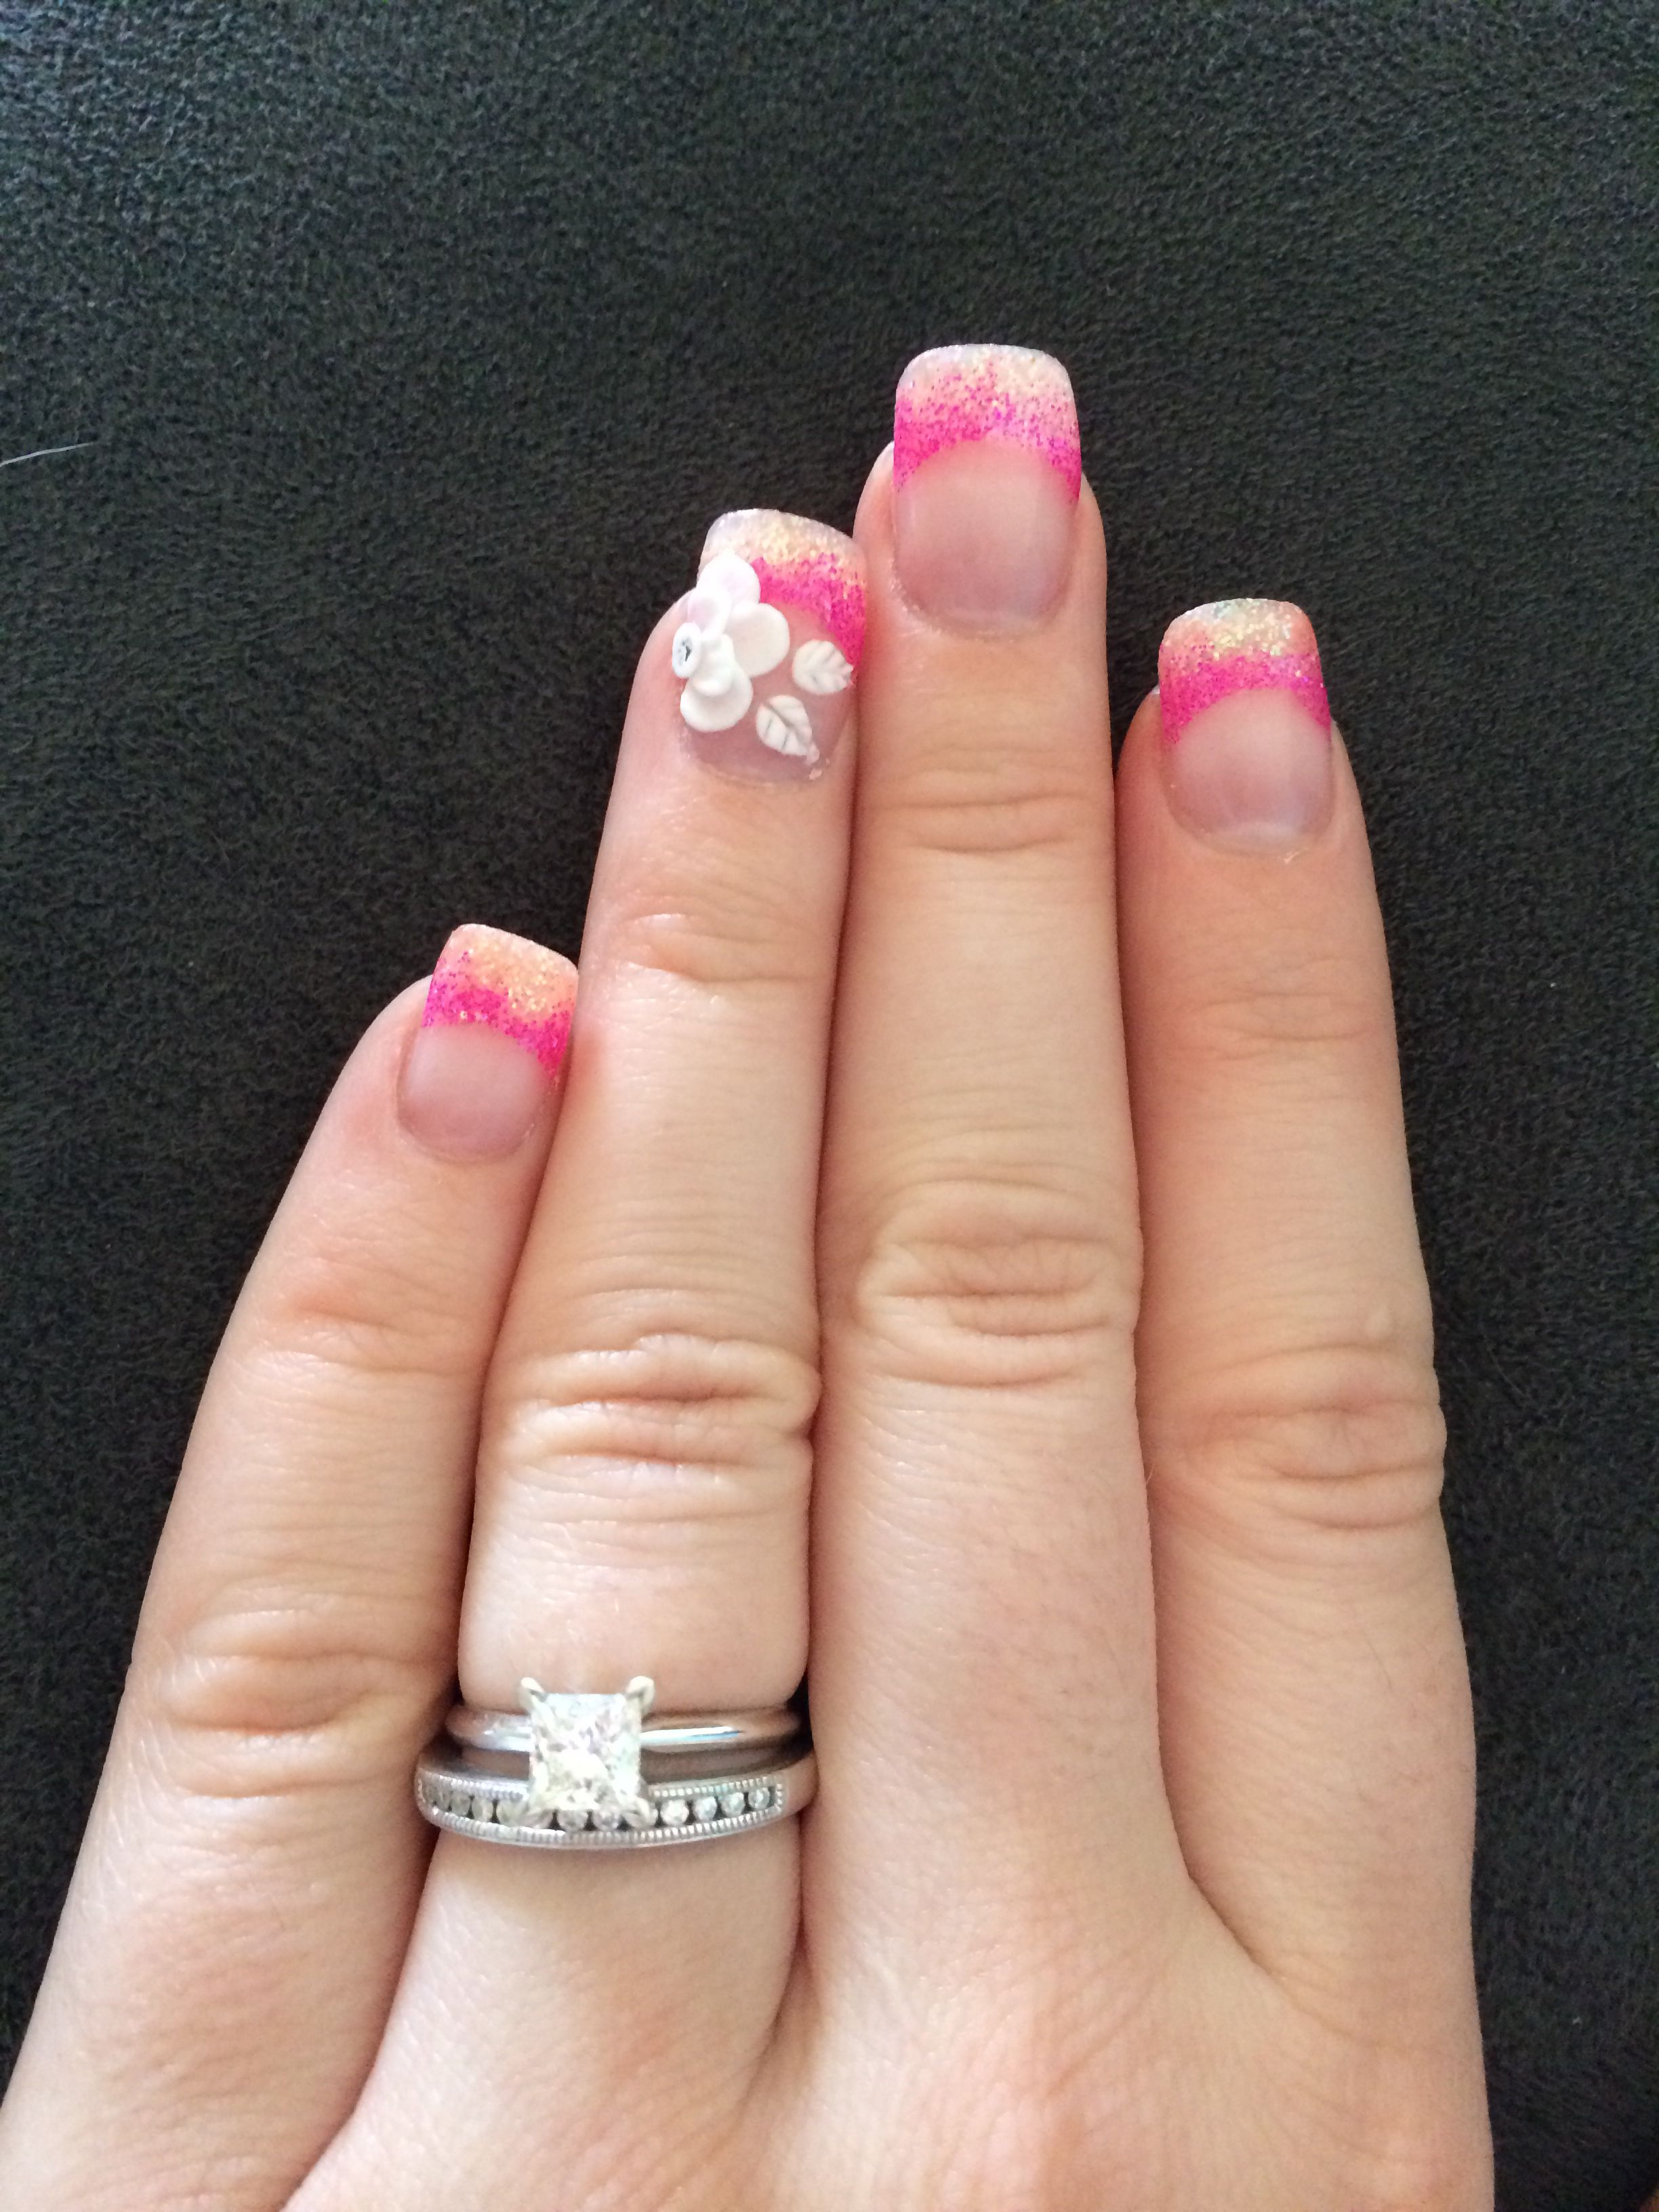 Spring Nails Absolutely Love Them By Cassidy At Designer Nails